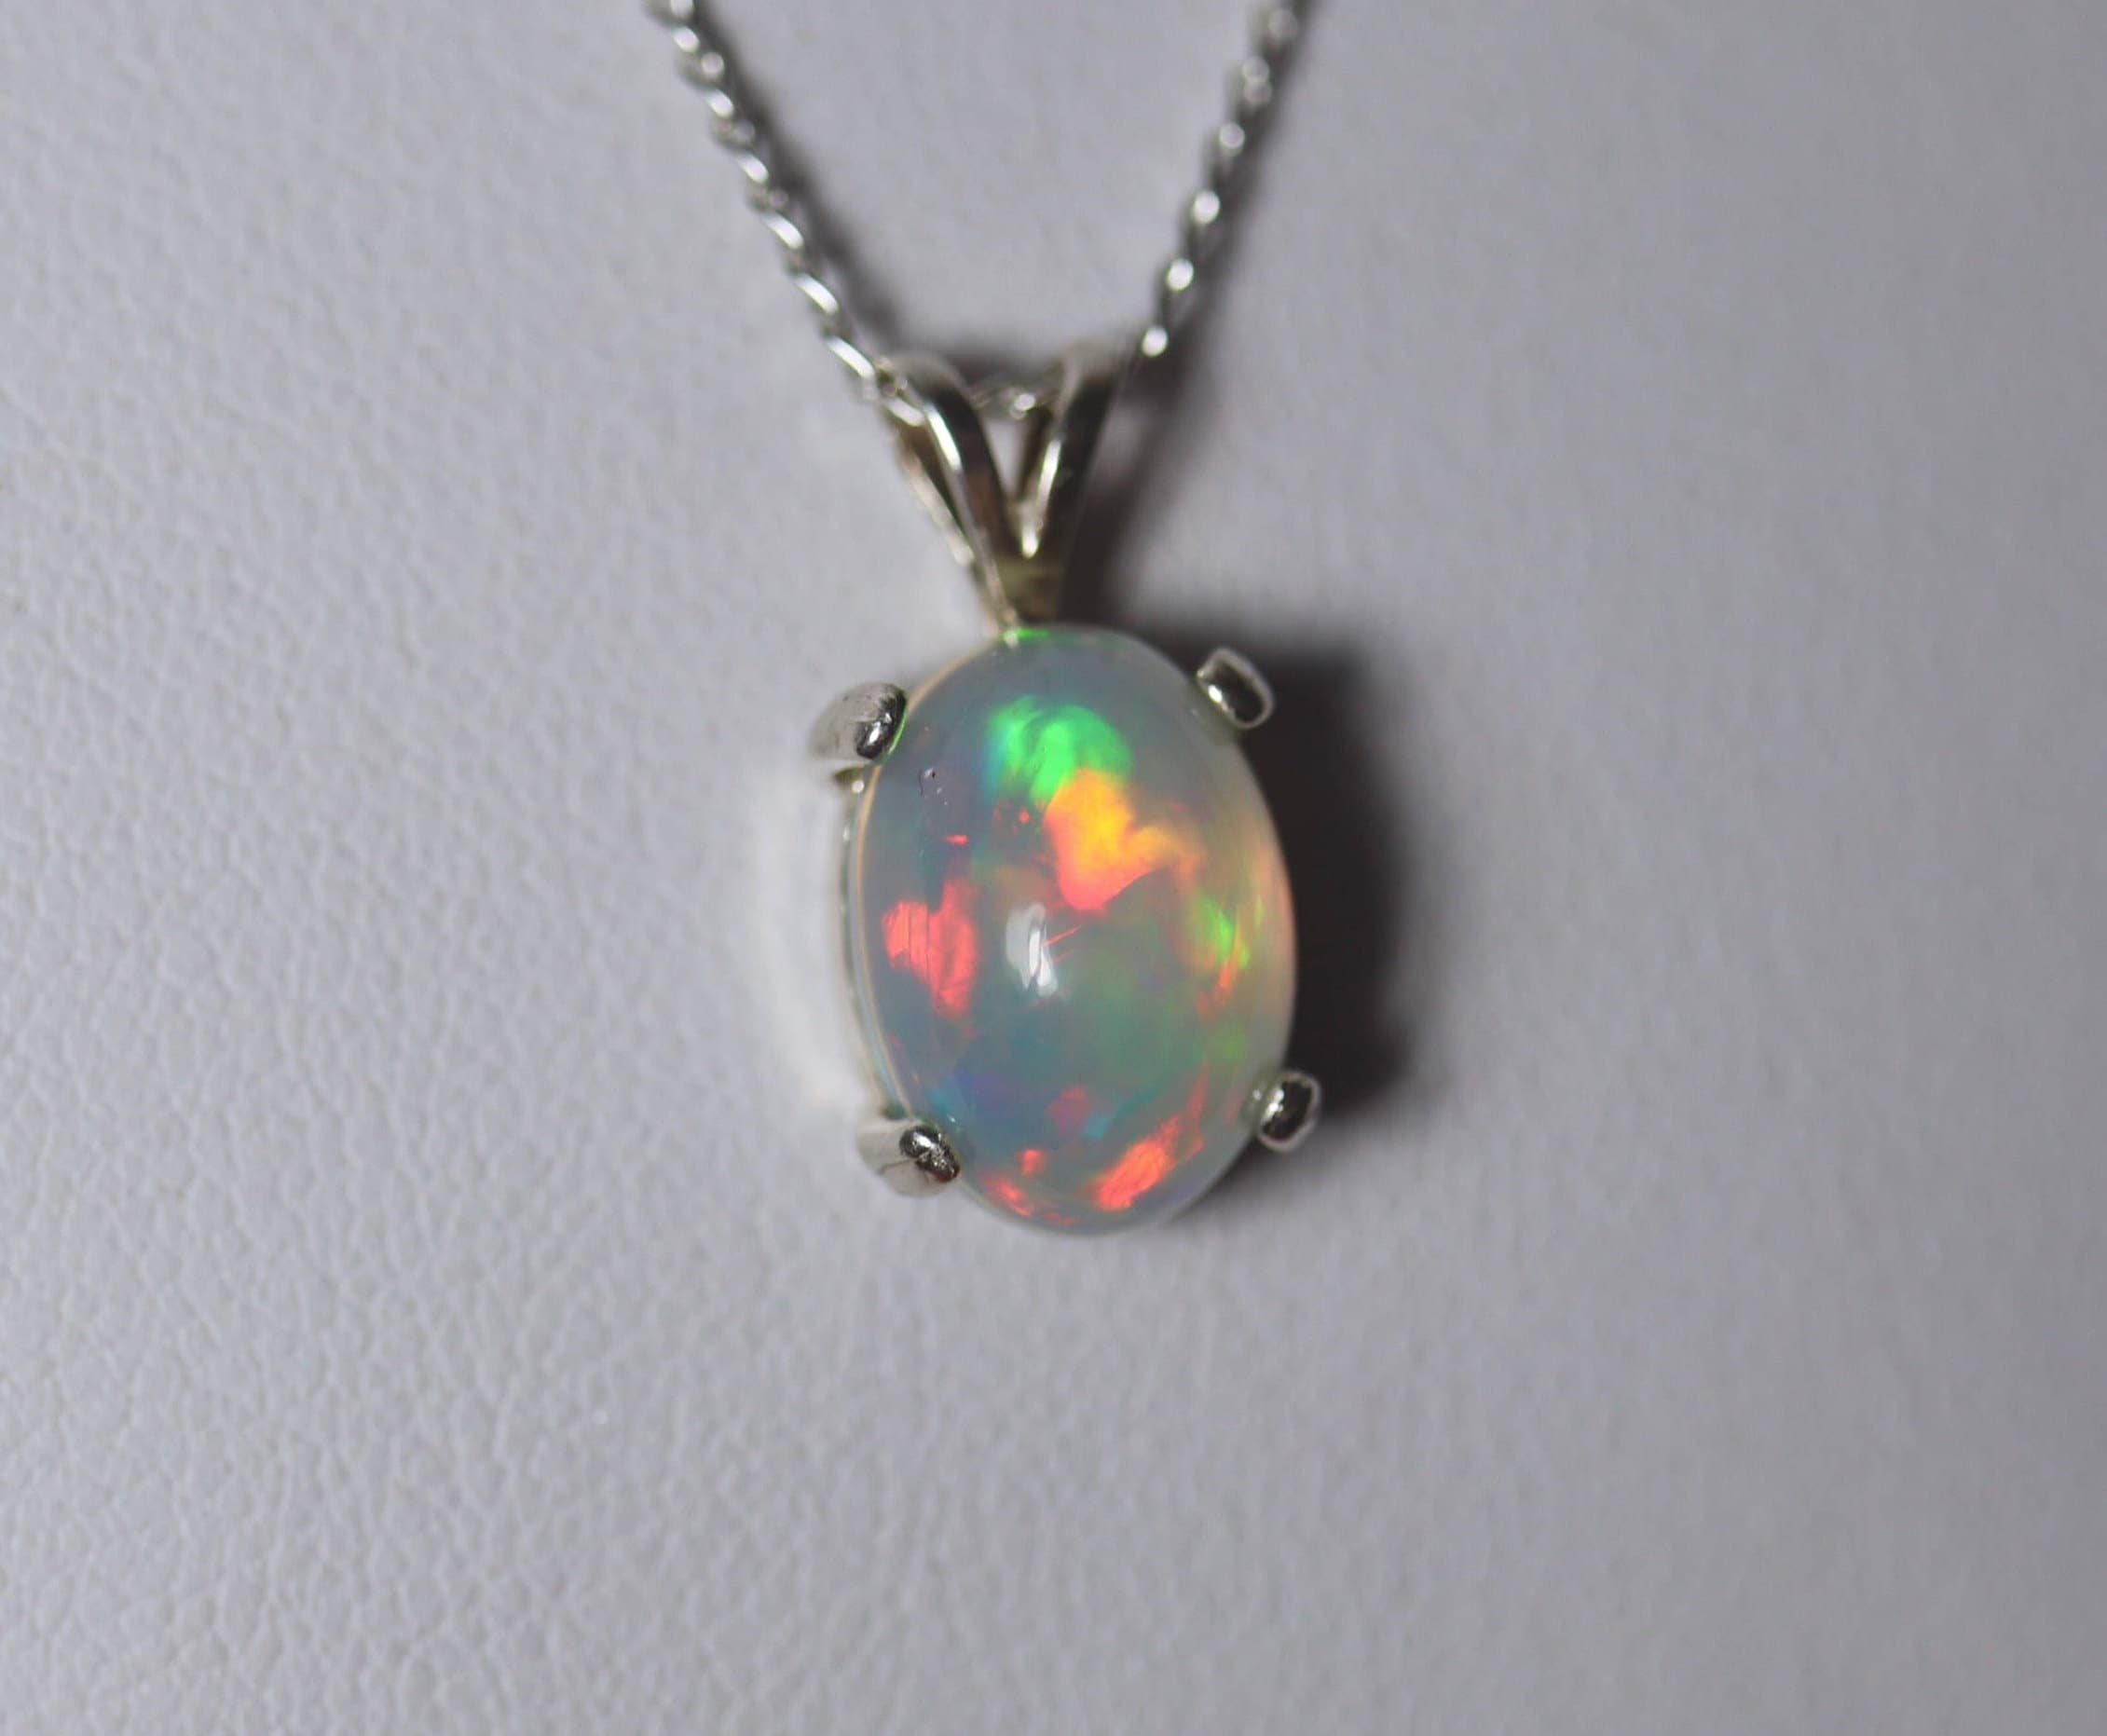 government site from official in heritage necklaces australia pendant fine opalneck product wholesale opal opaljewelry pendent real opals jewelry lace